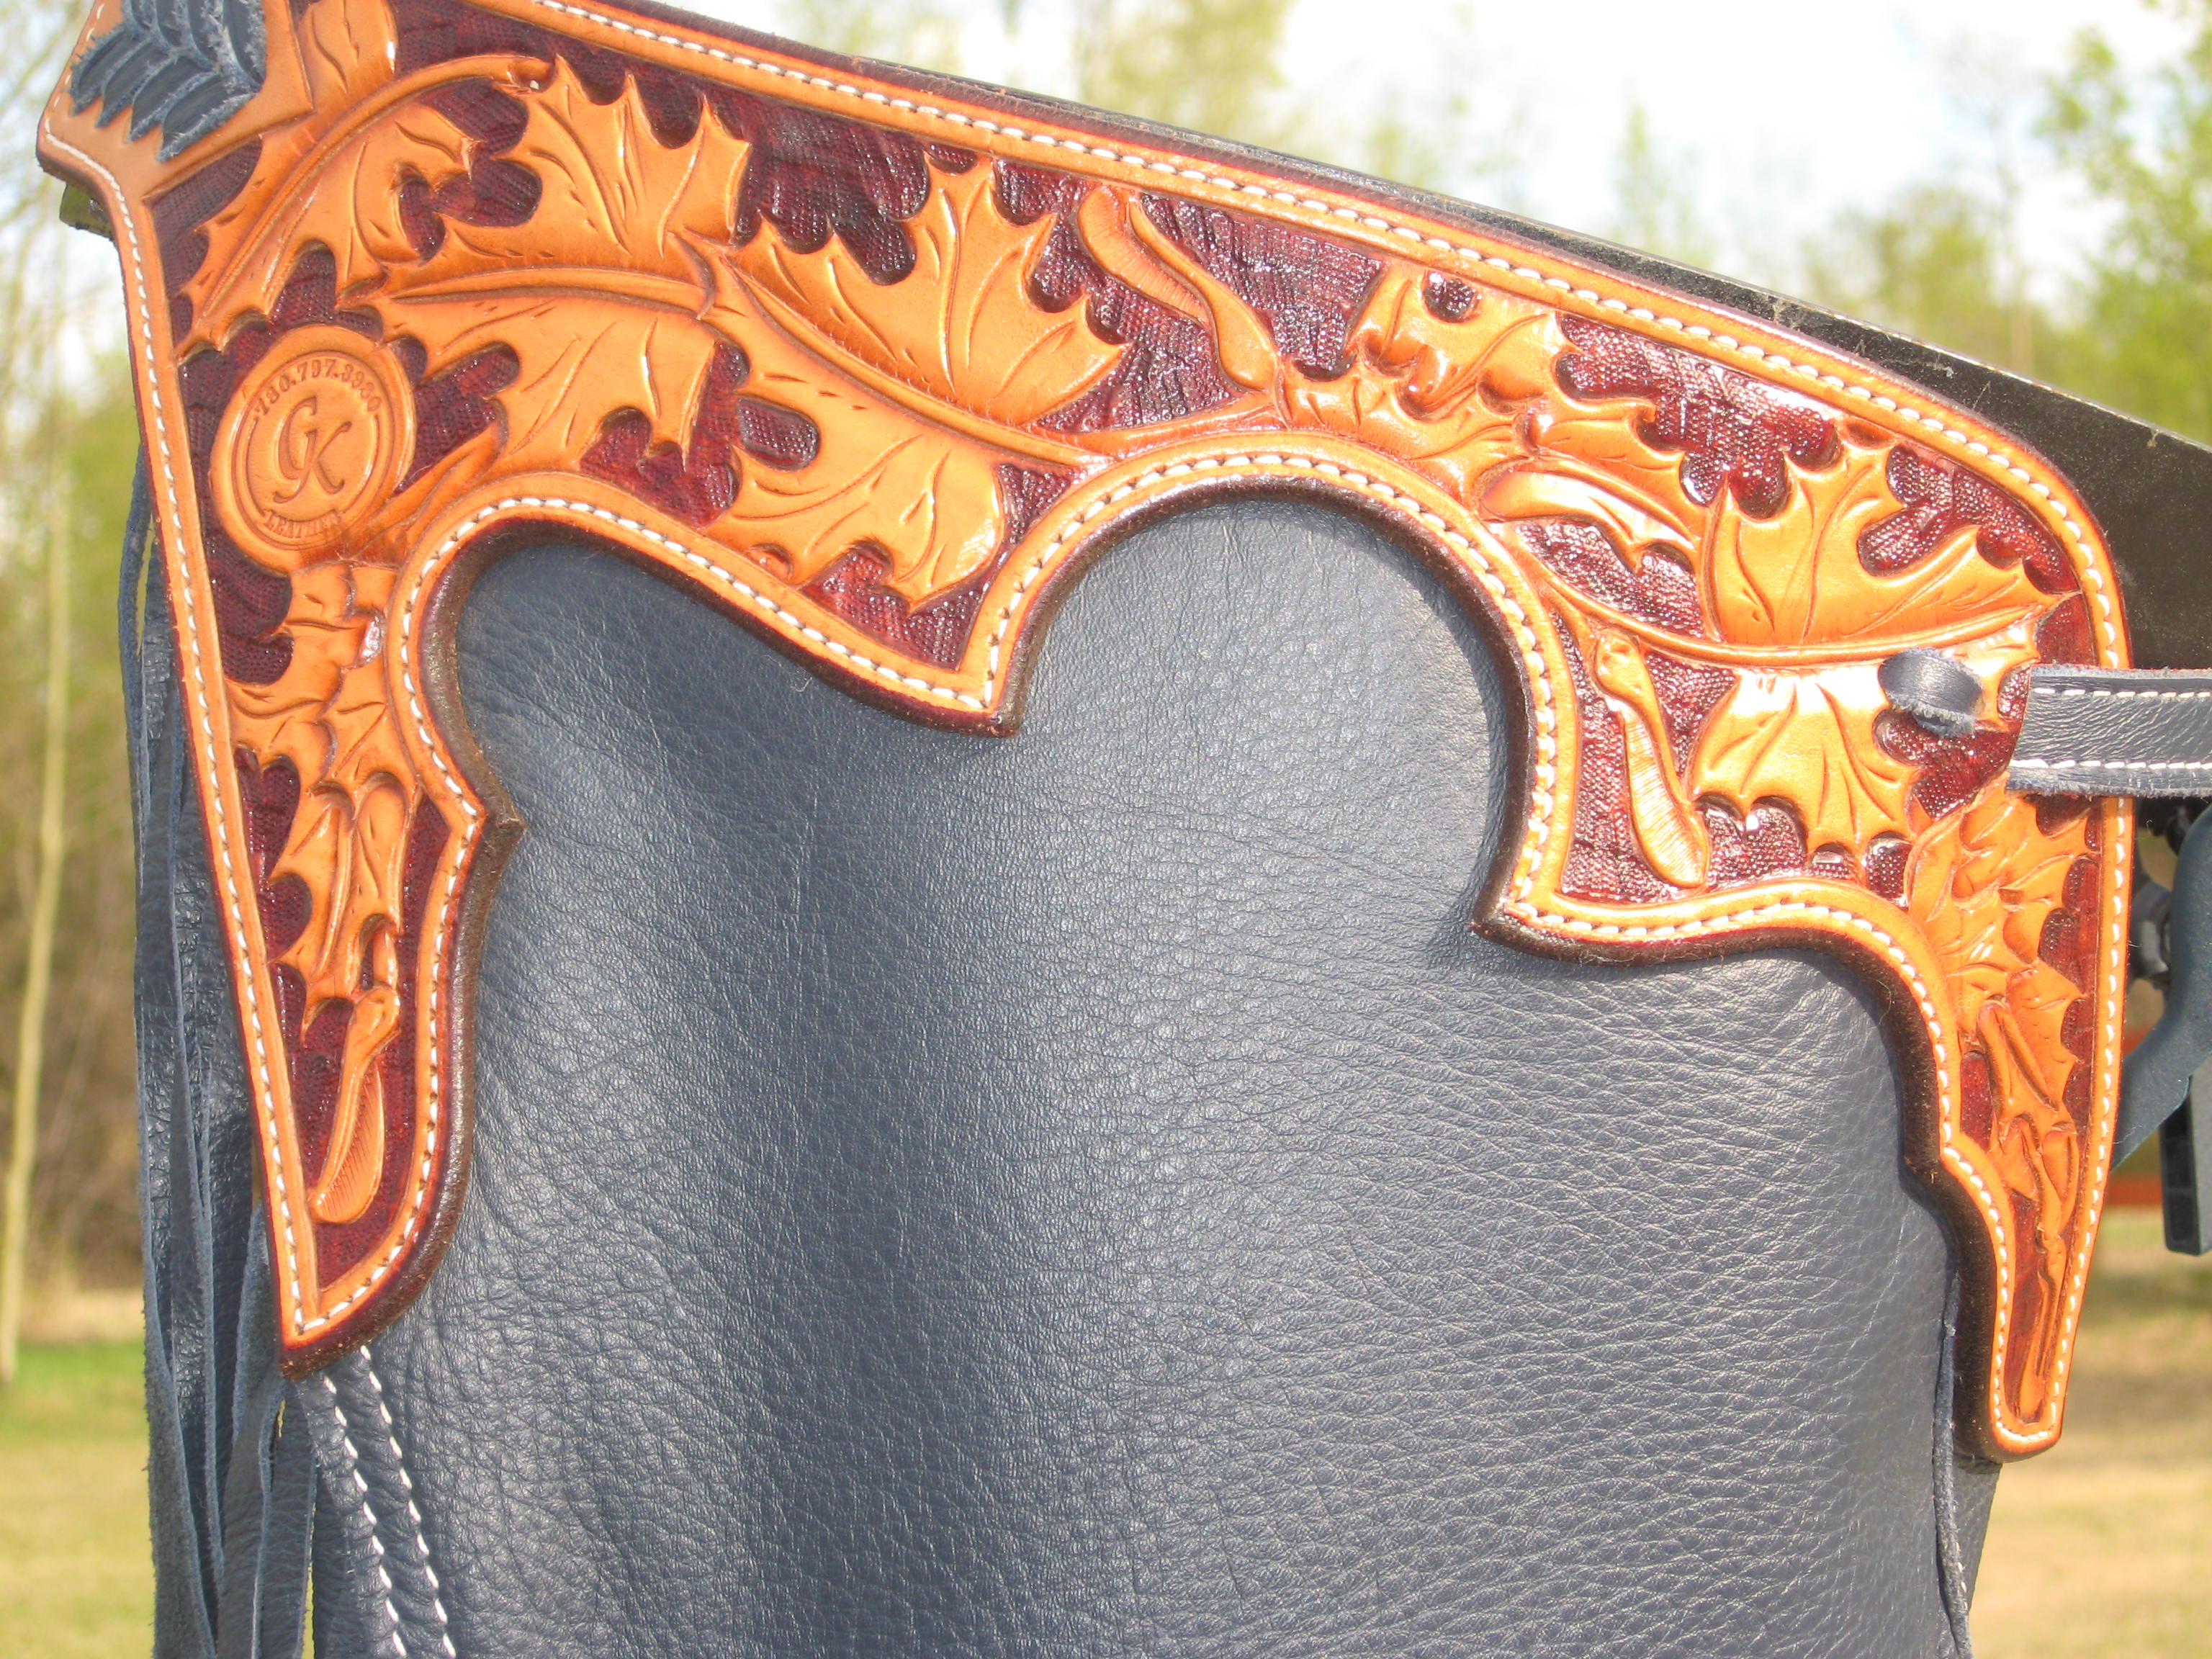 Reining chap with maple leaf carving ck leather